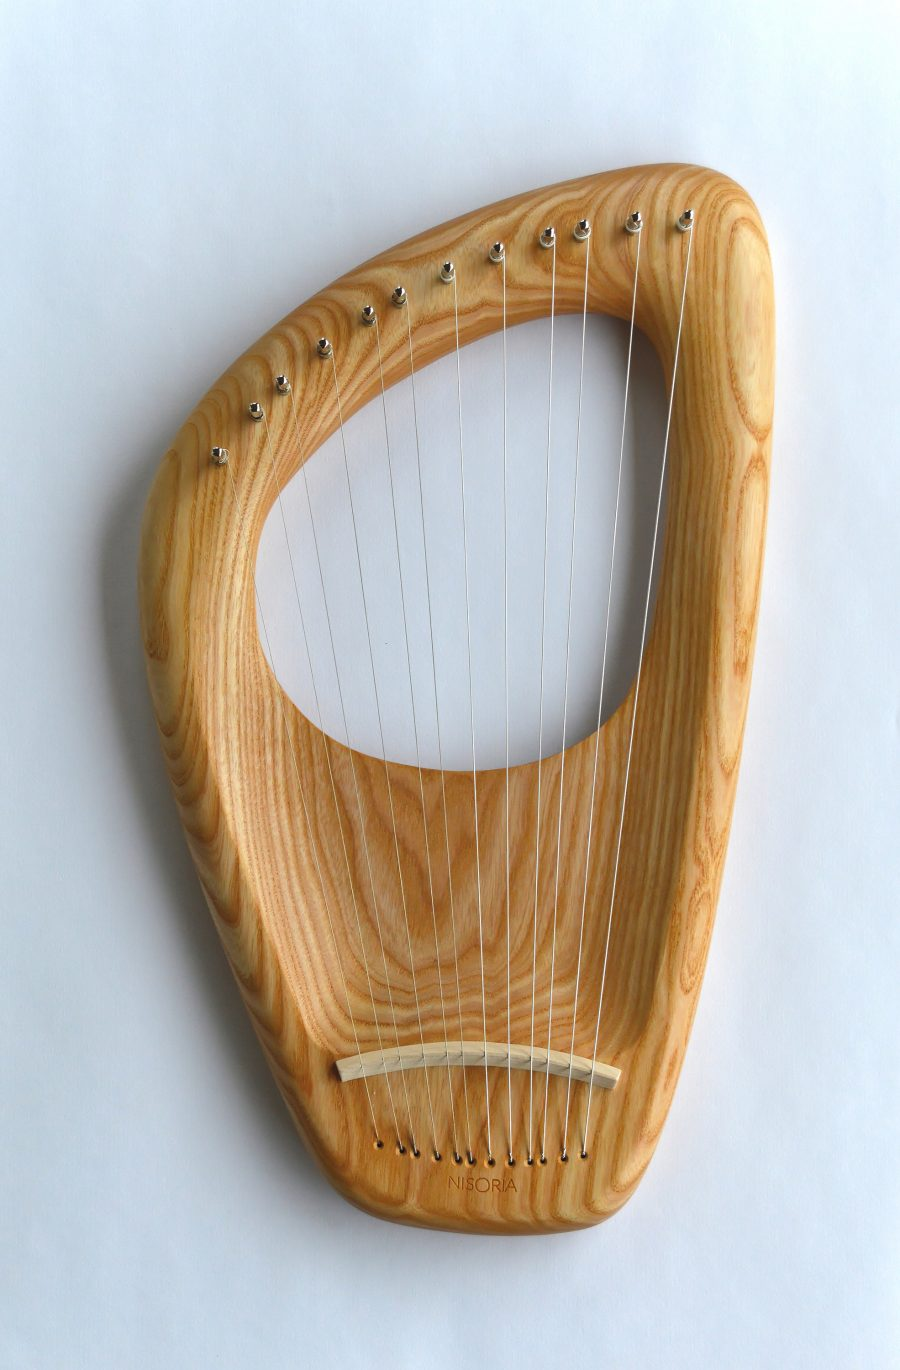 12 String Diatonic Lyre, Ash Wood